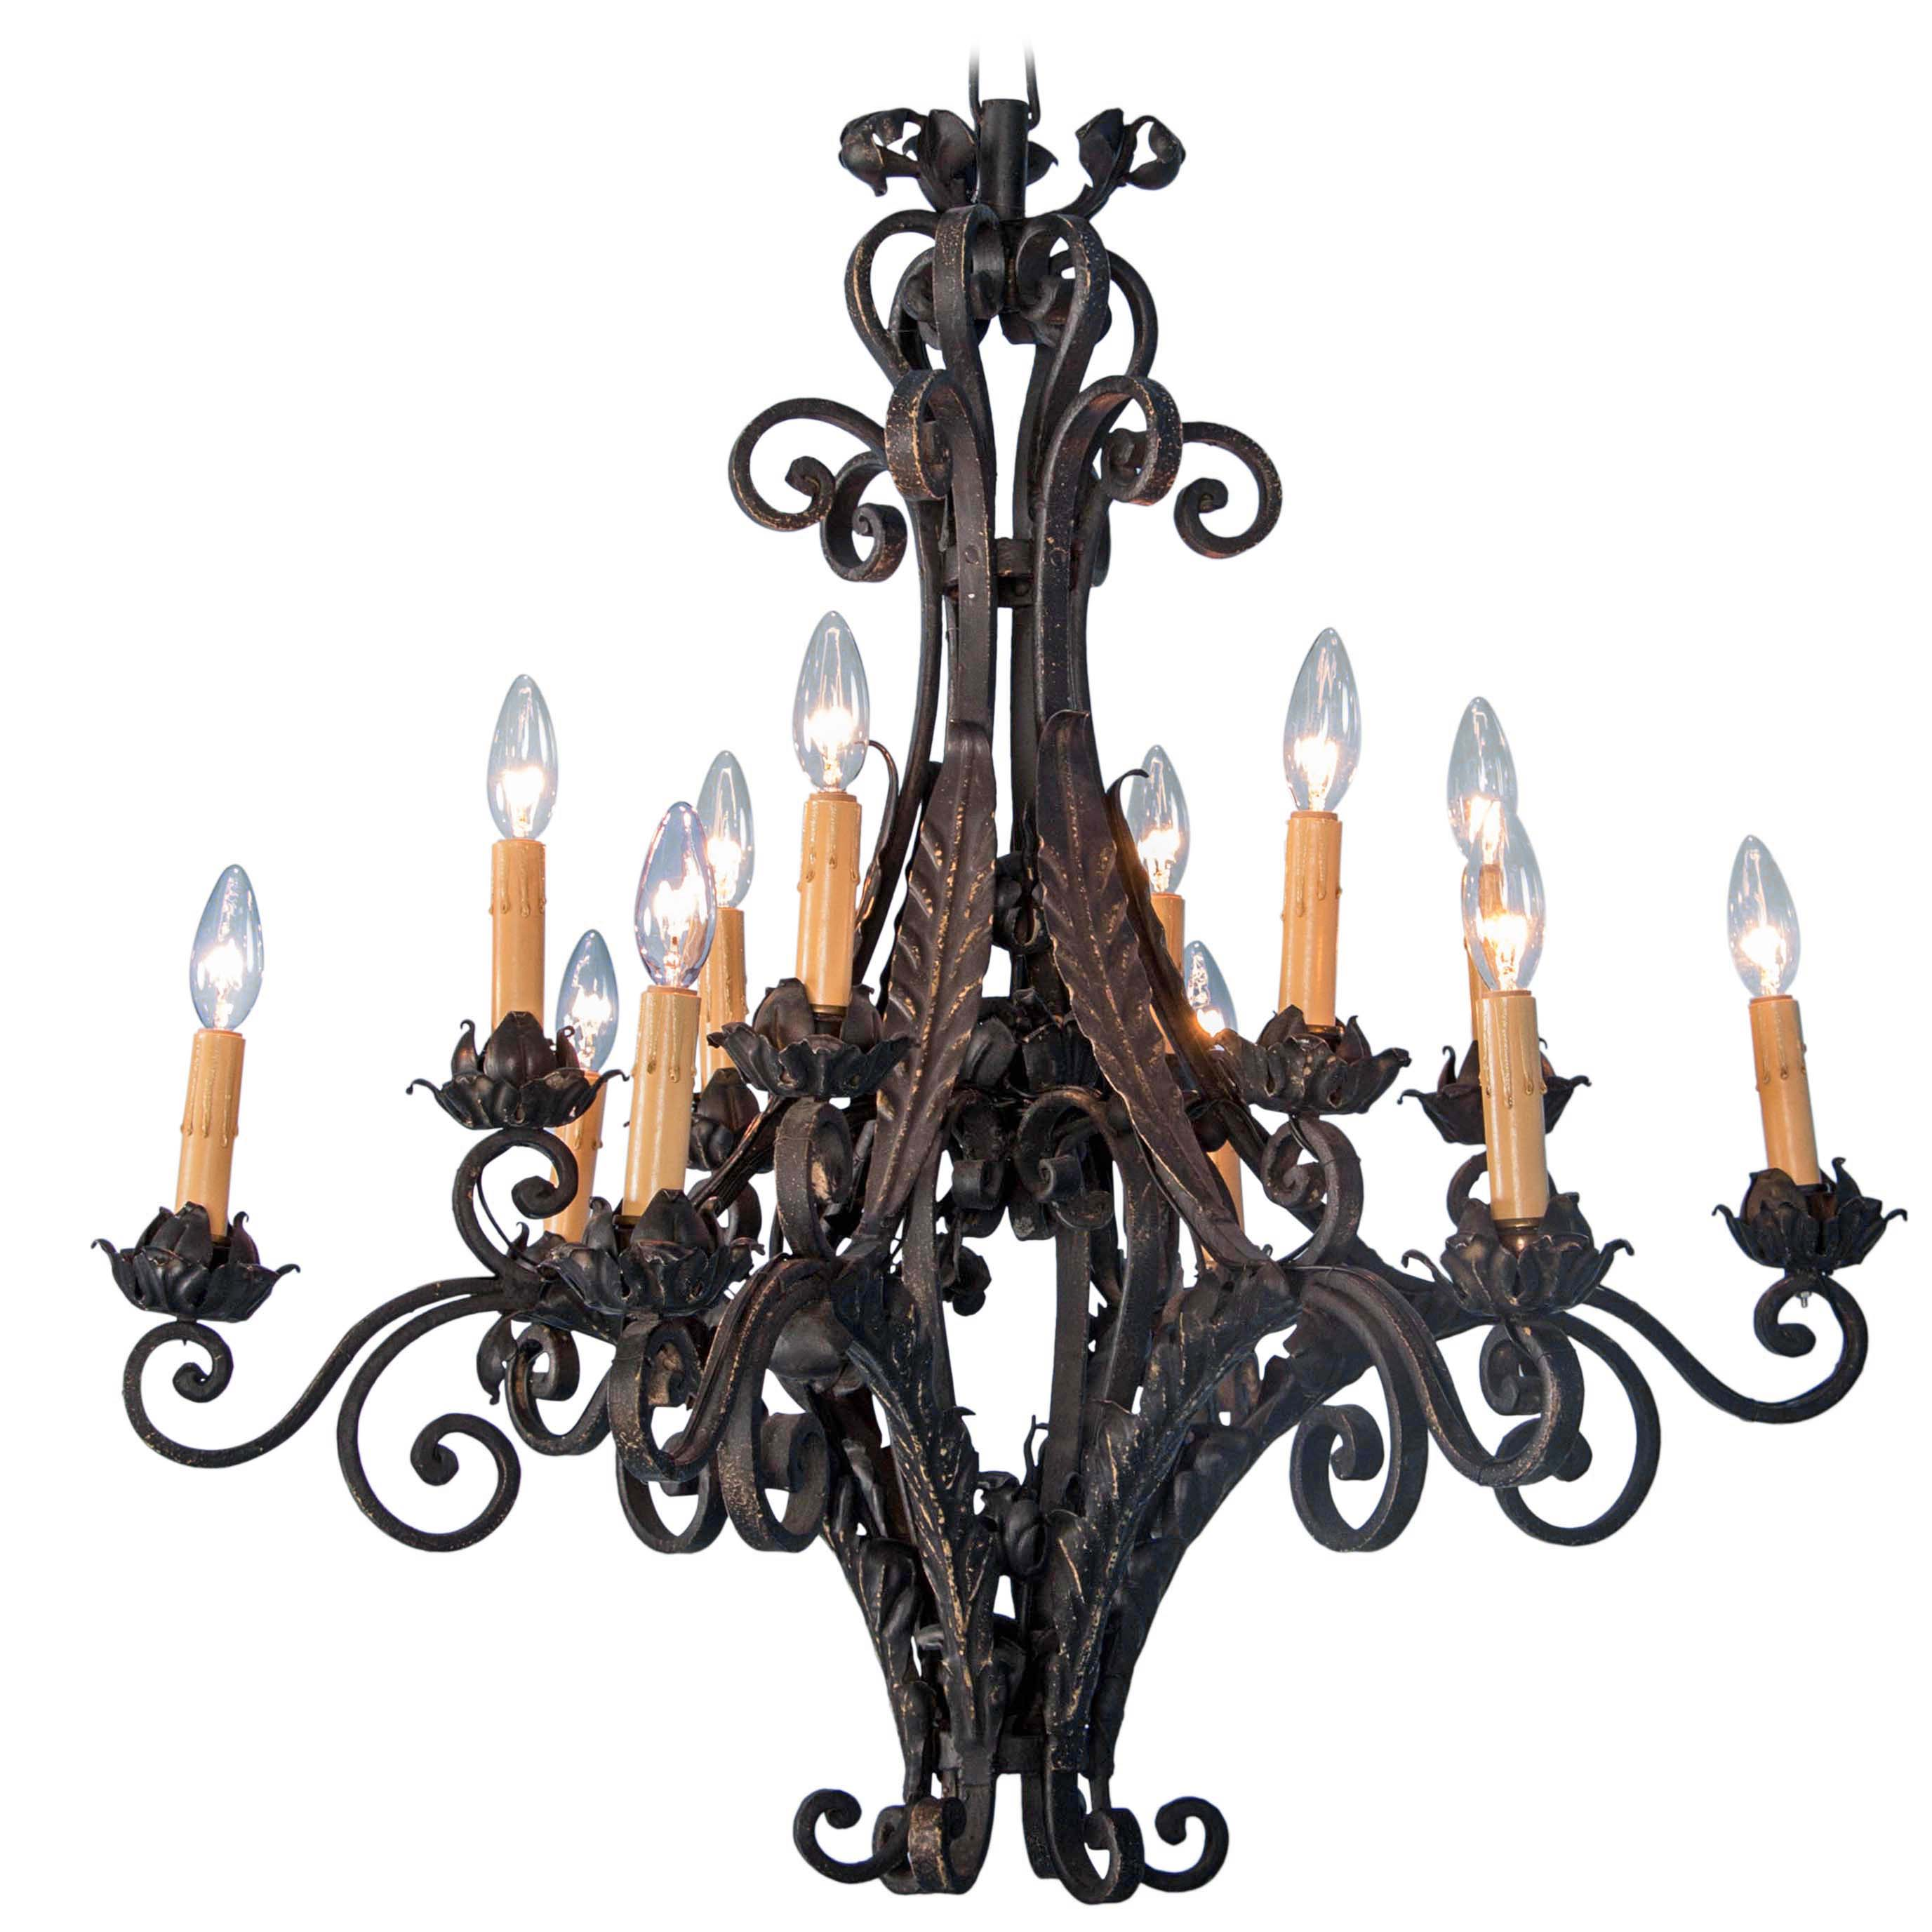 Antique French Twelve-Light Wrought Iron Chandelier